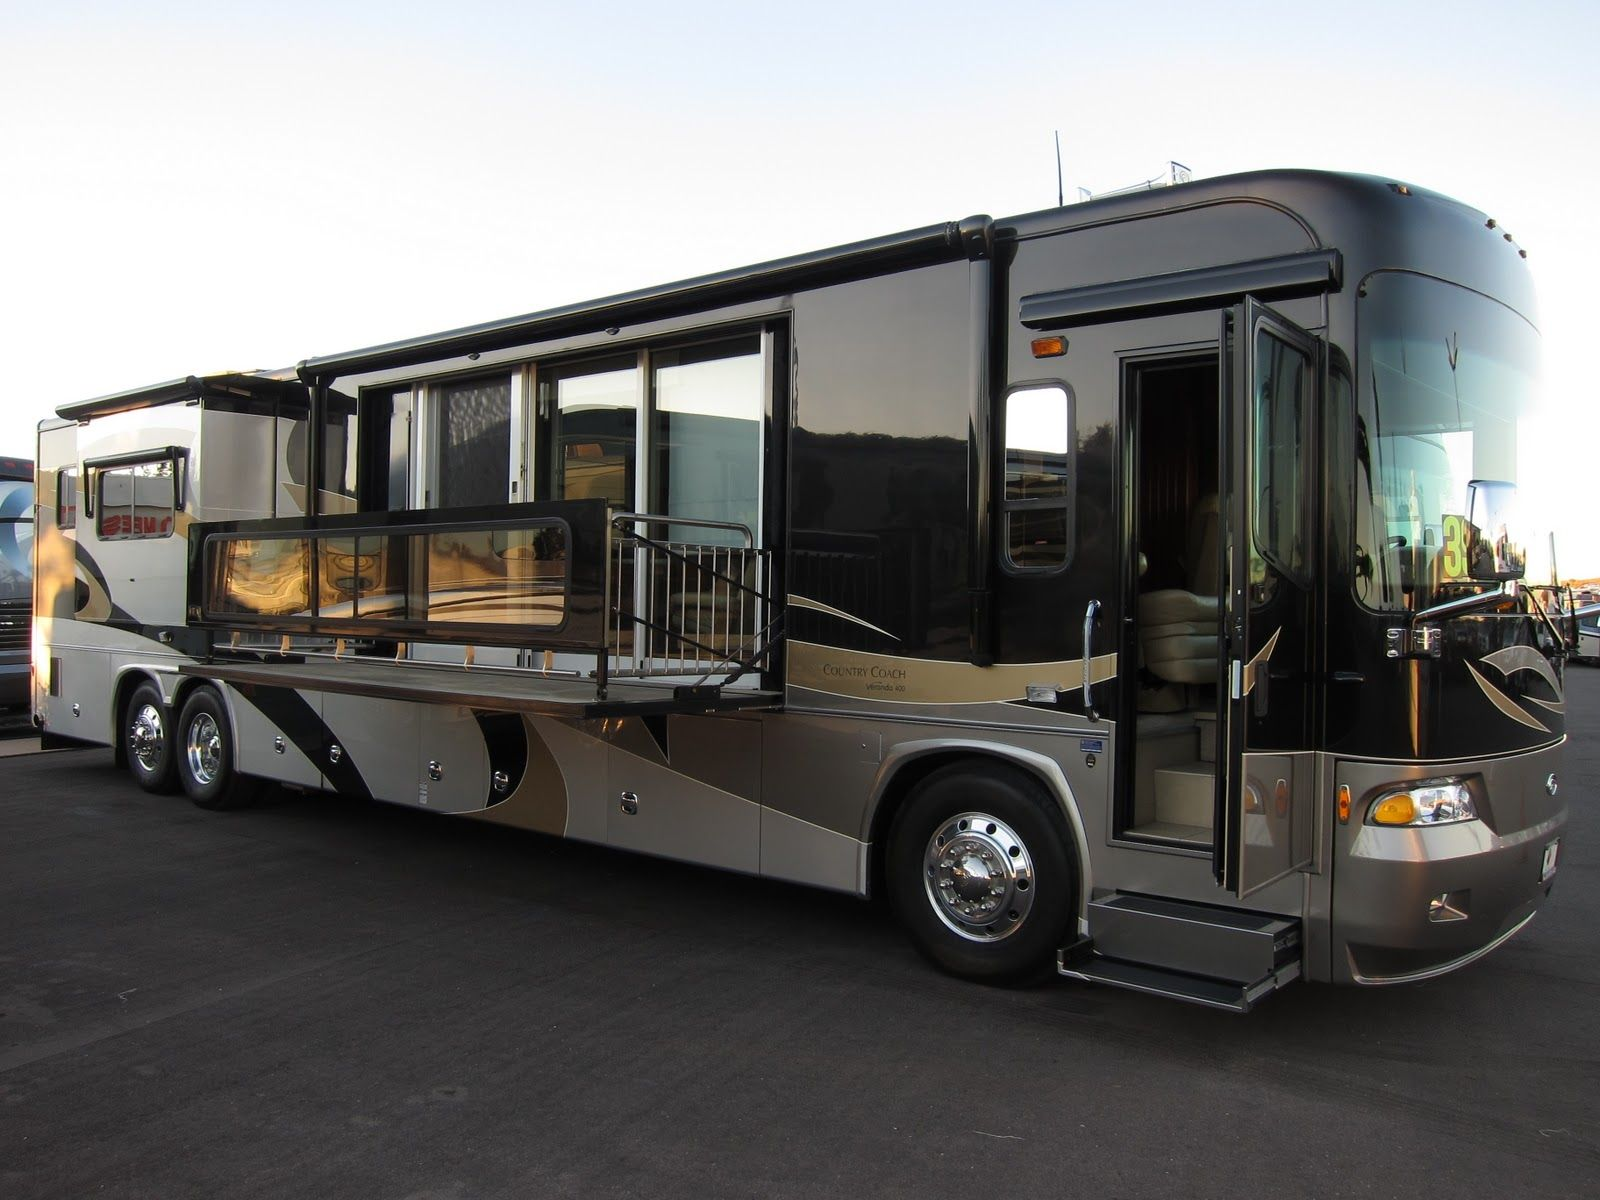 Luxury Motorhomes Images Just Noticed That The Rv